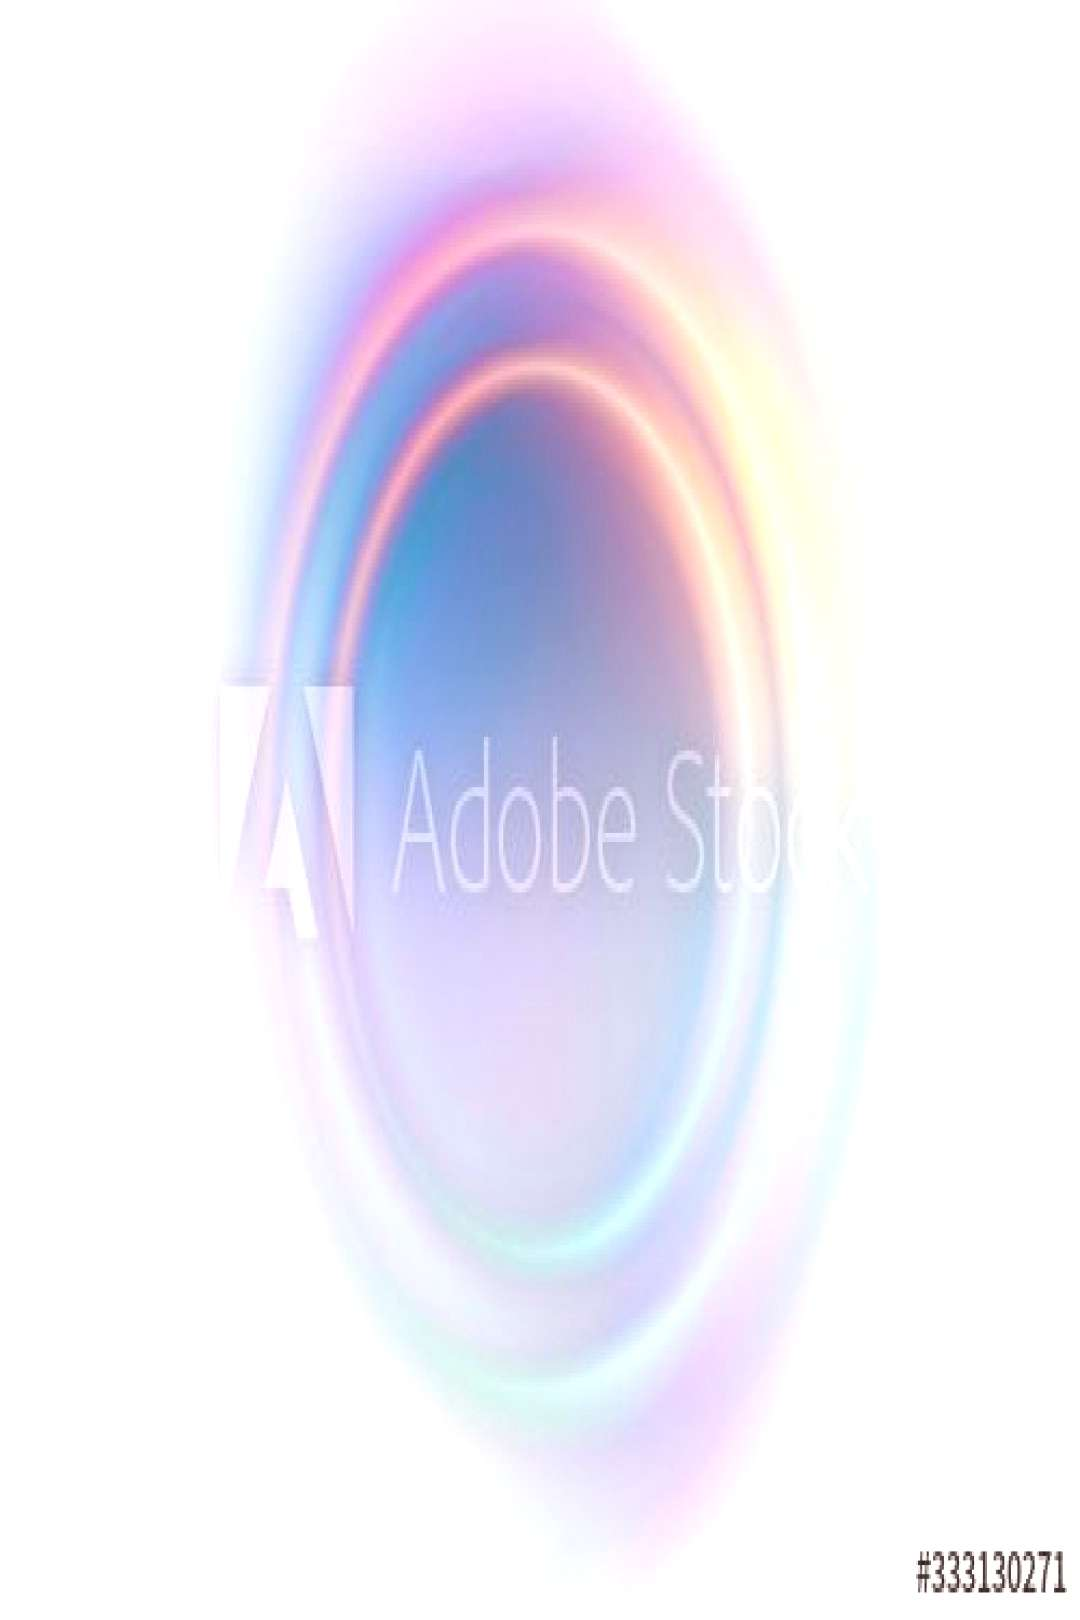 Abstract circles blurred colors background ,